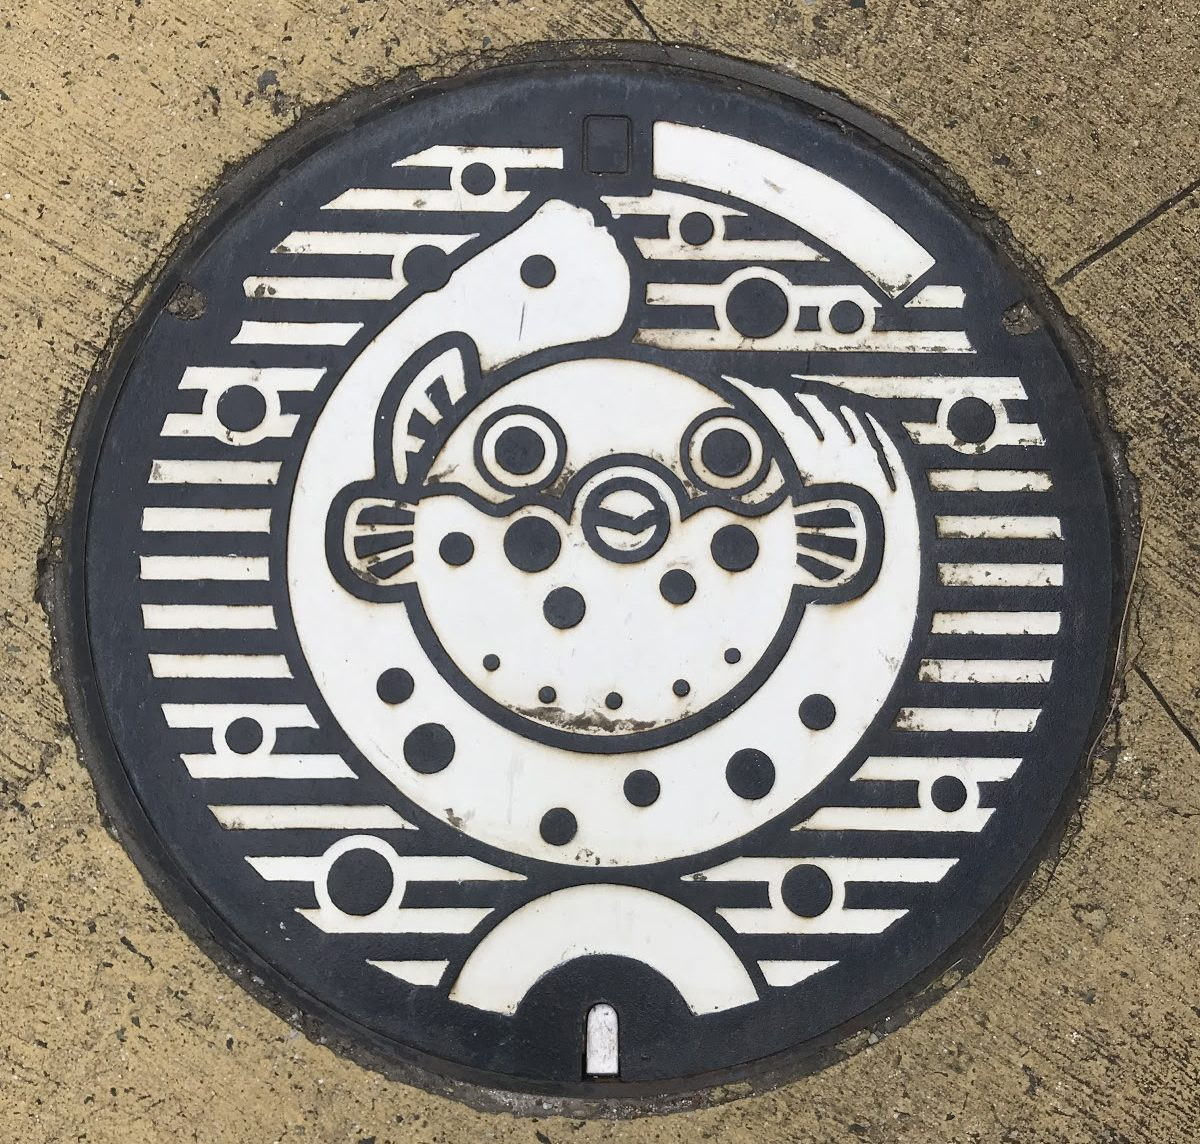 Picture of the manhole cover with the drawing of a fugu fish